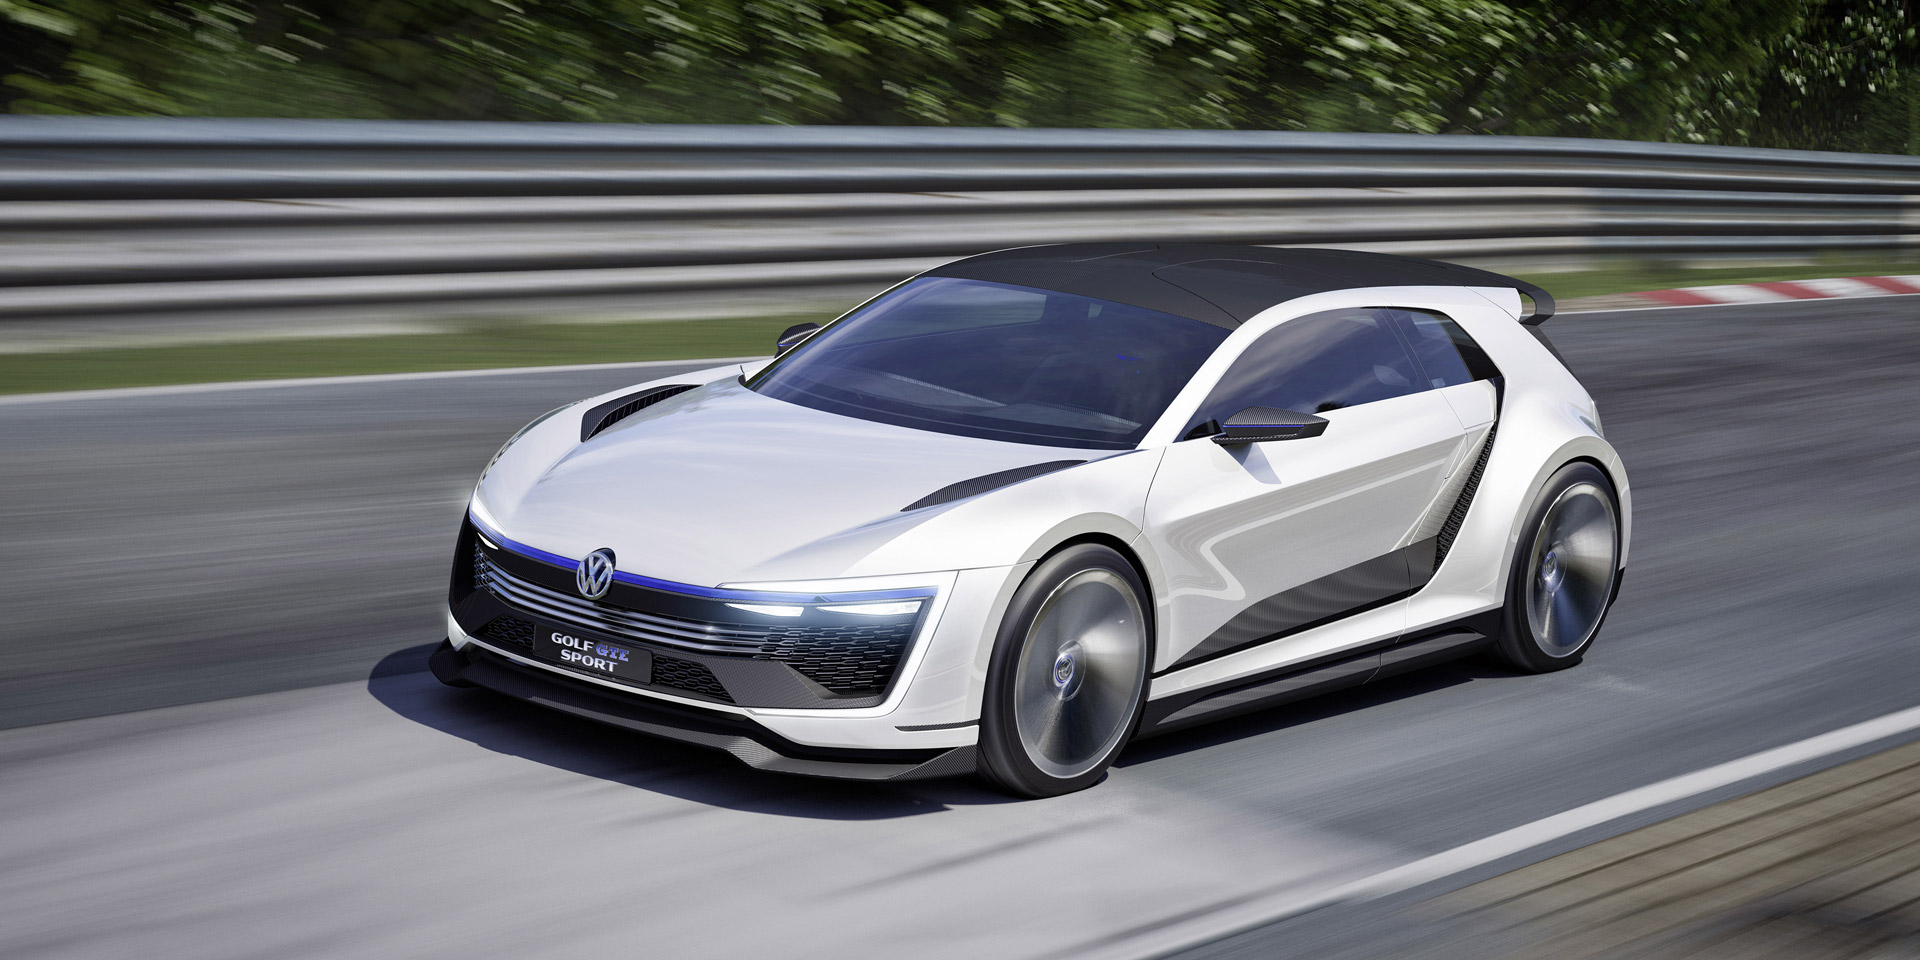 Volkswagen Presents 395-Horsepower Golf GTE Sport Concept At 2015 ...